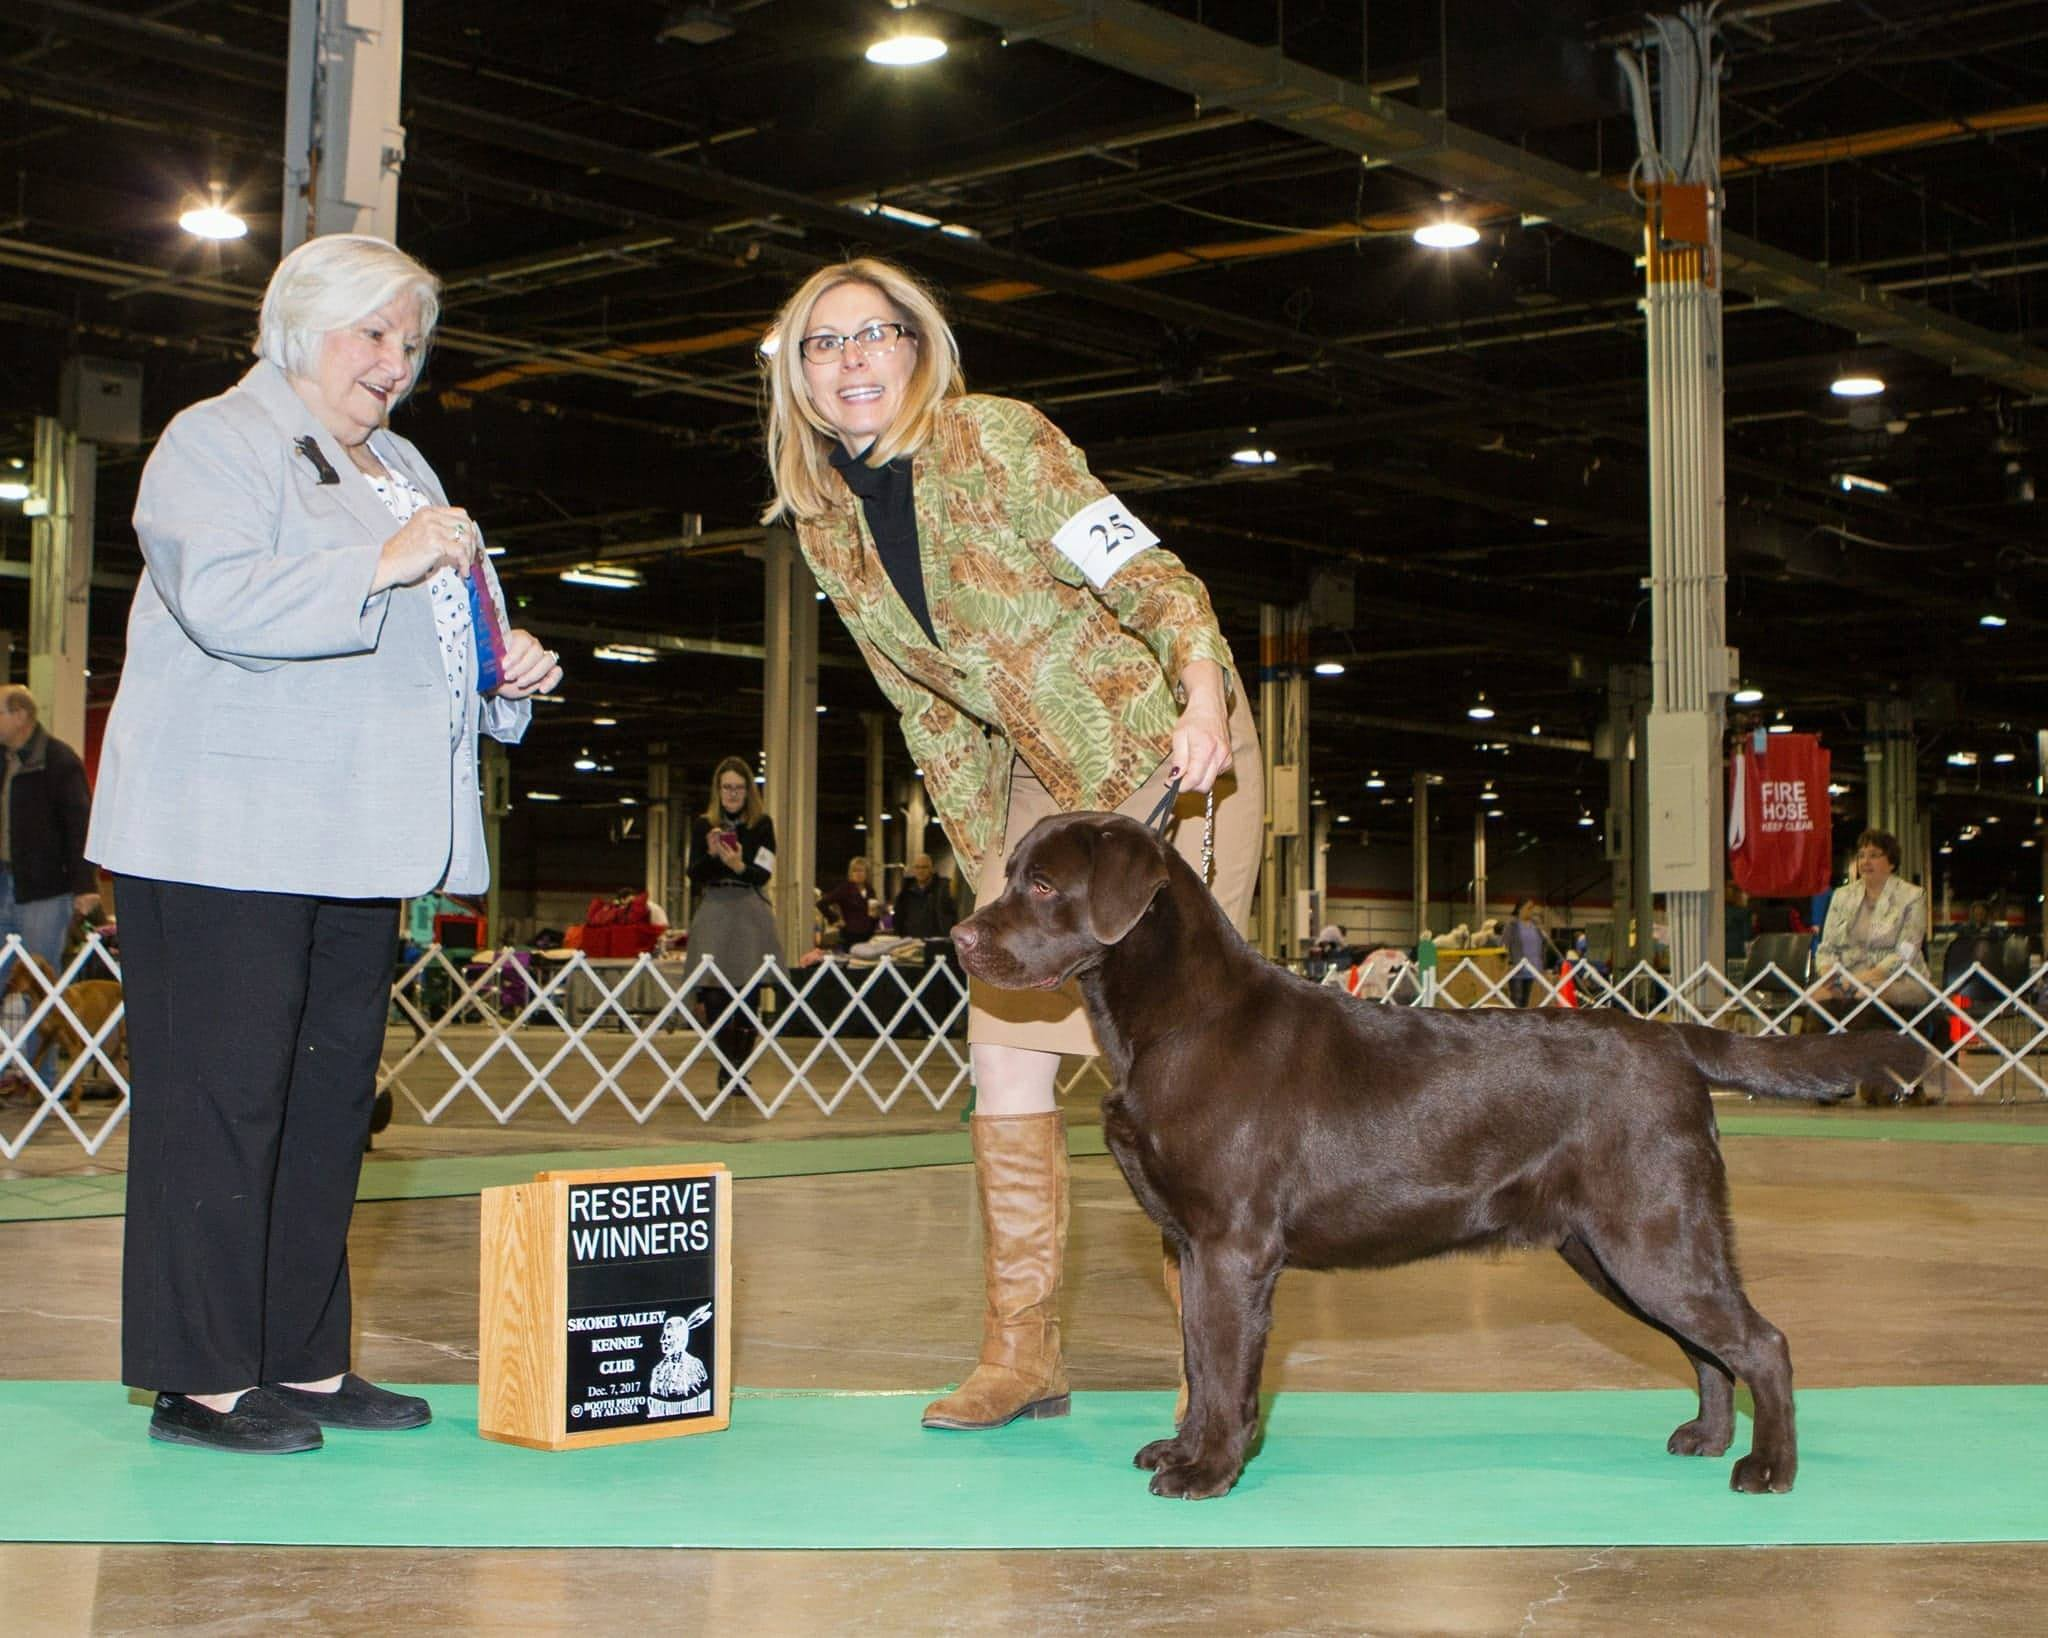 Reserve Winners Dog - Judge Gloria Gerringer